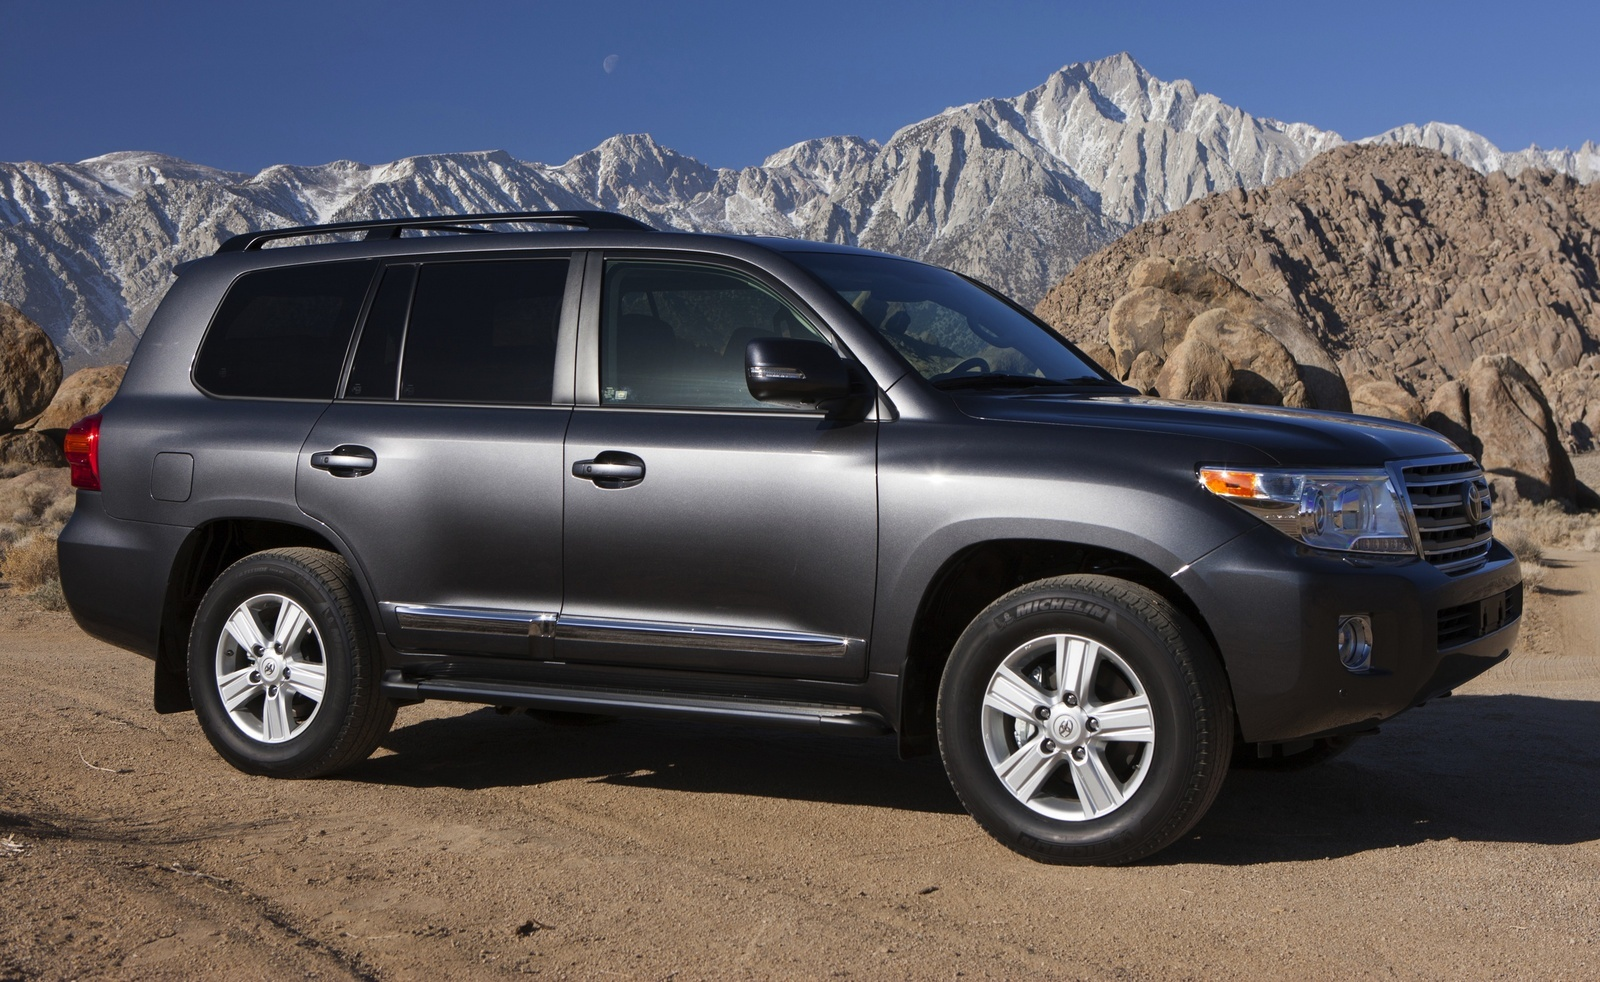 2014 toyota land cruiser - overview - cargurus